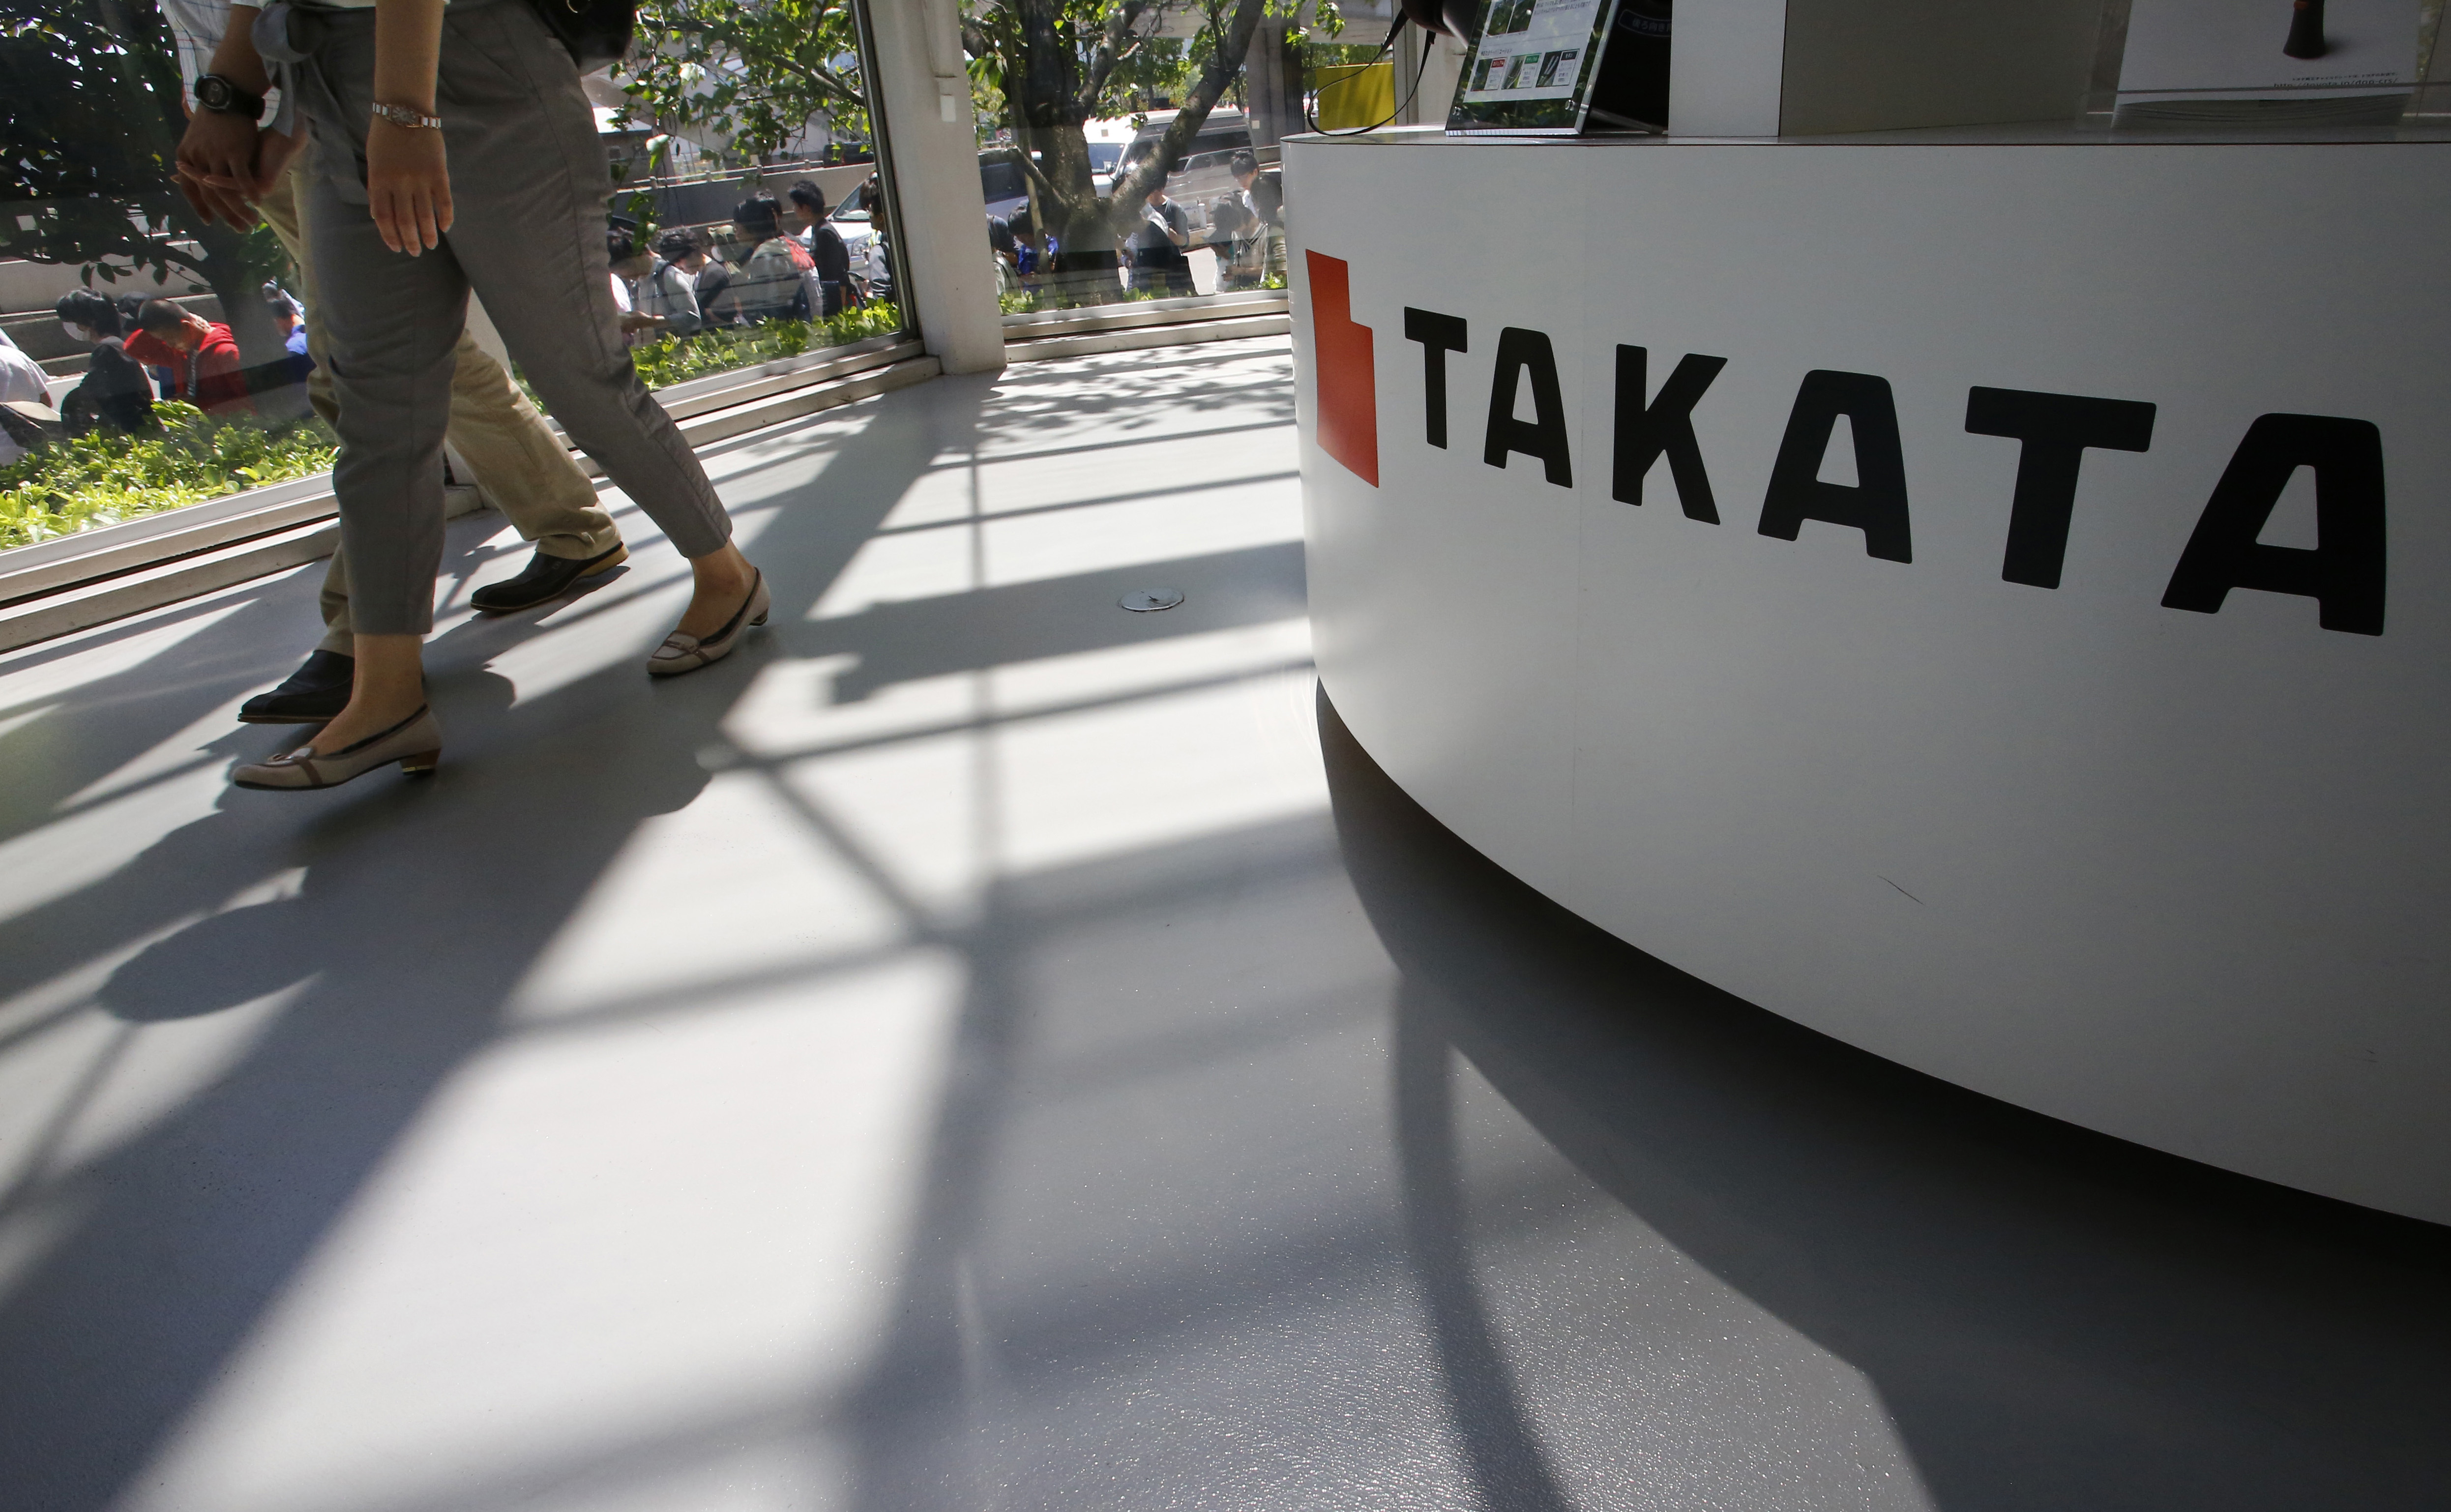 U S  Confirms 11th Death Linked to Faulty Takata Airbag Inflator